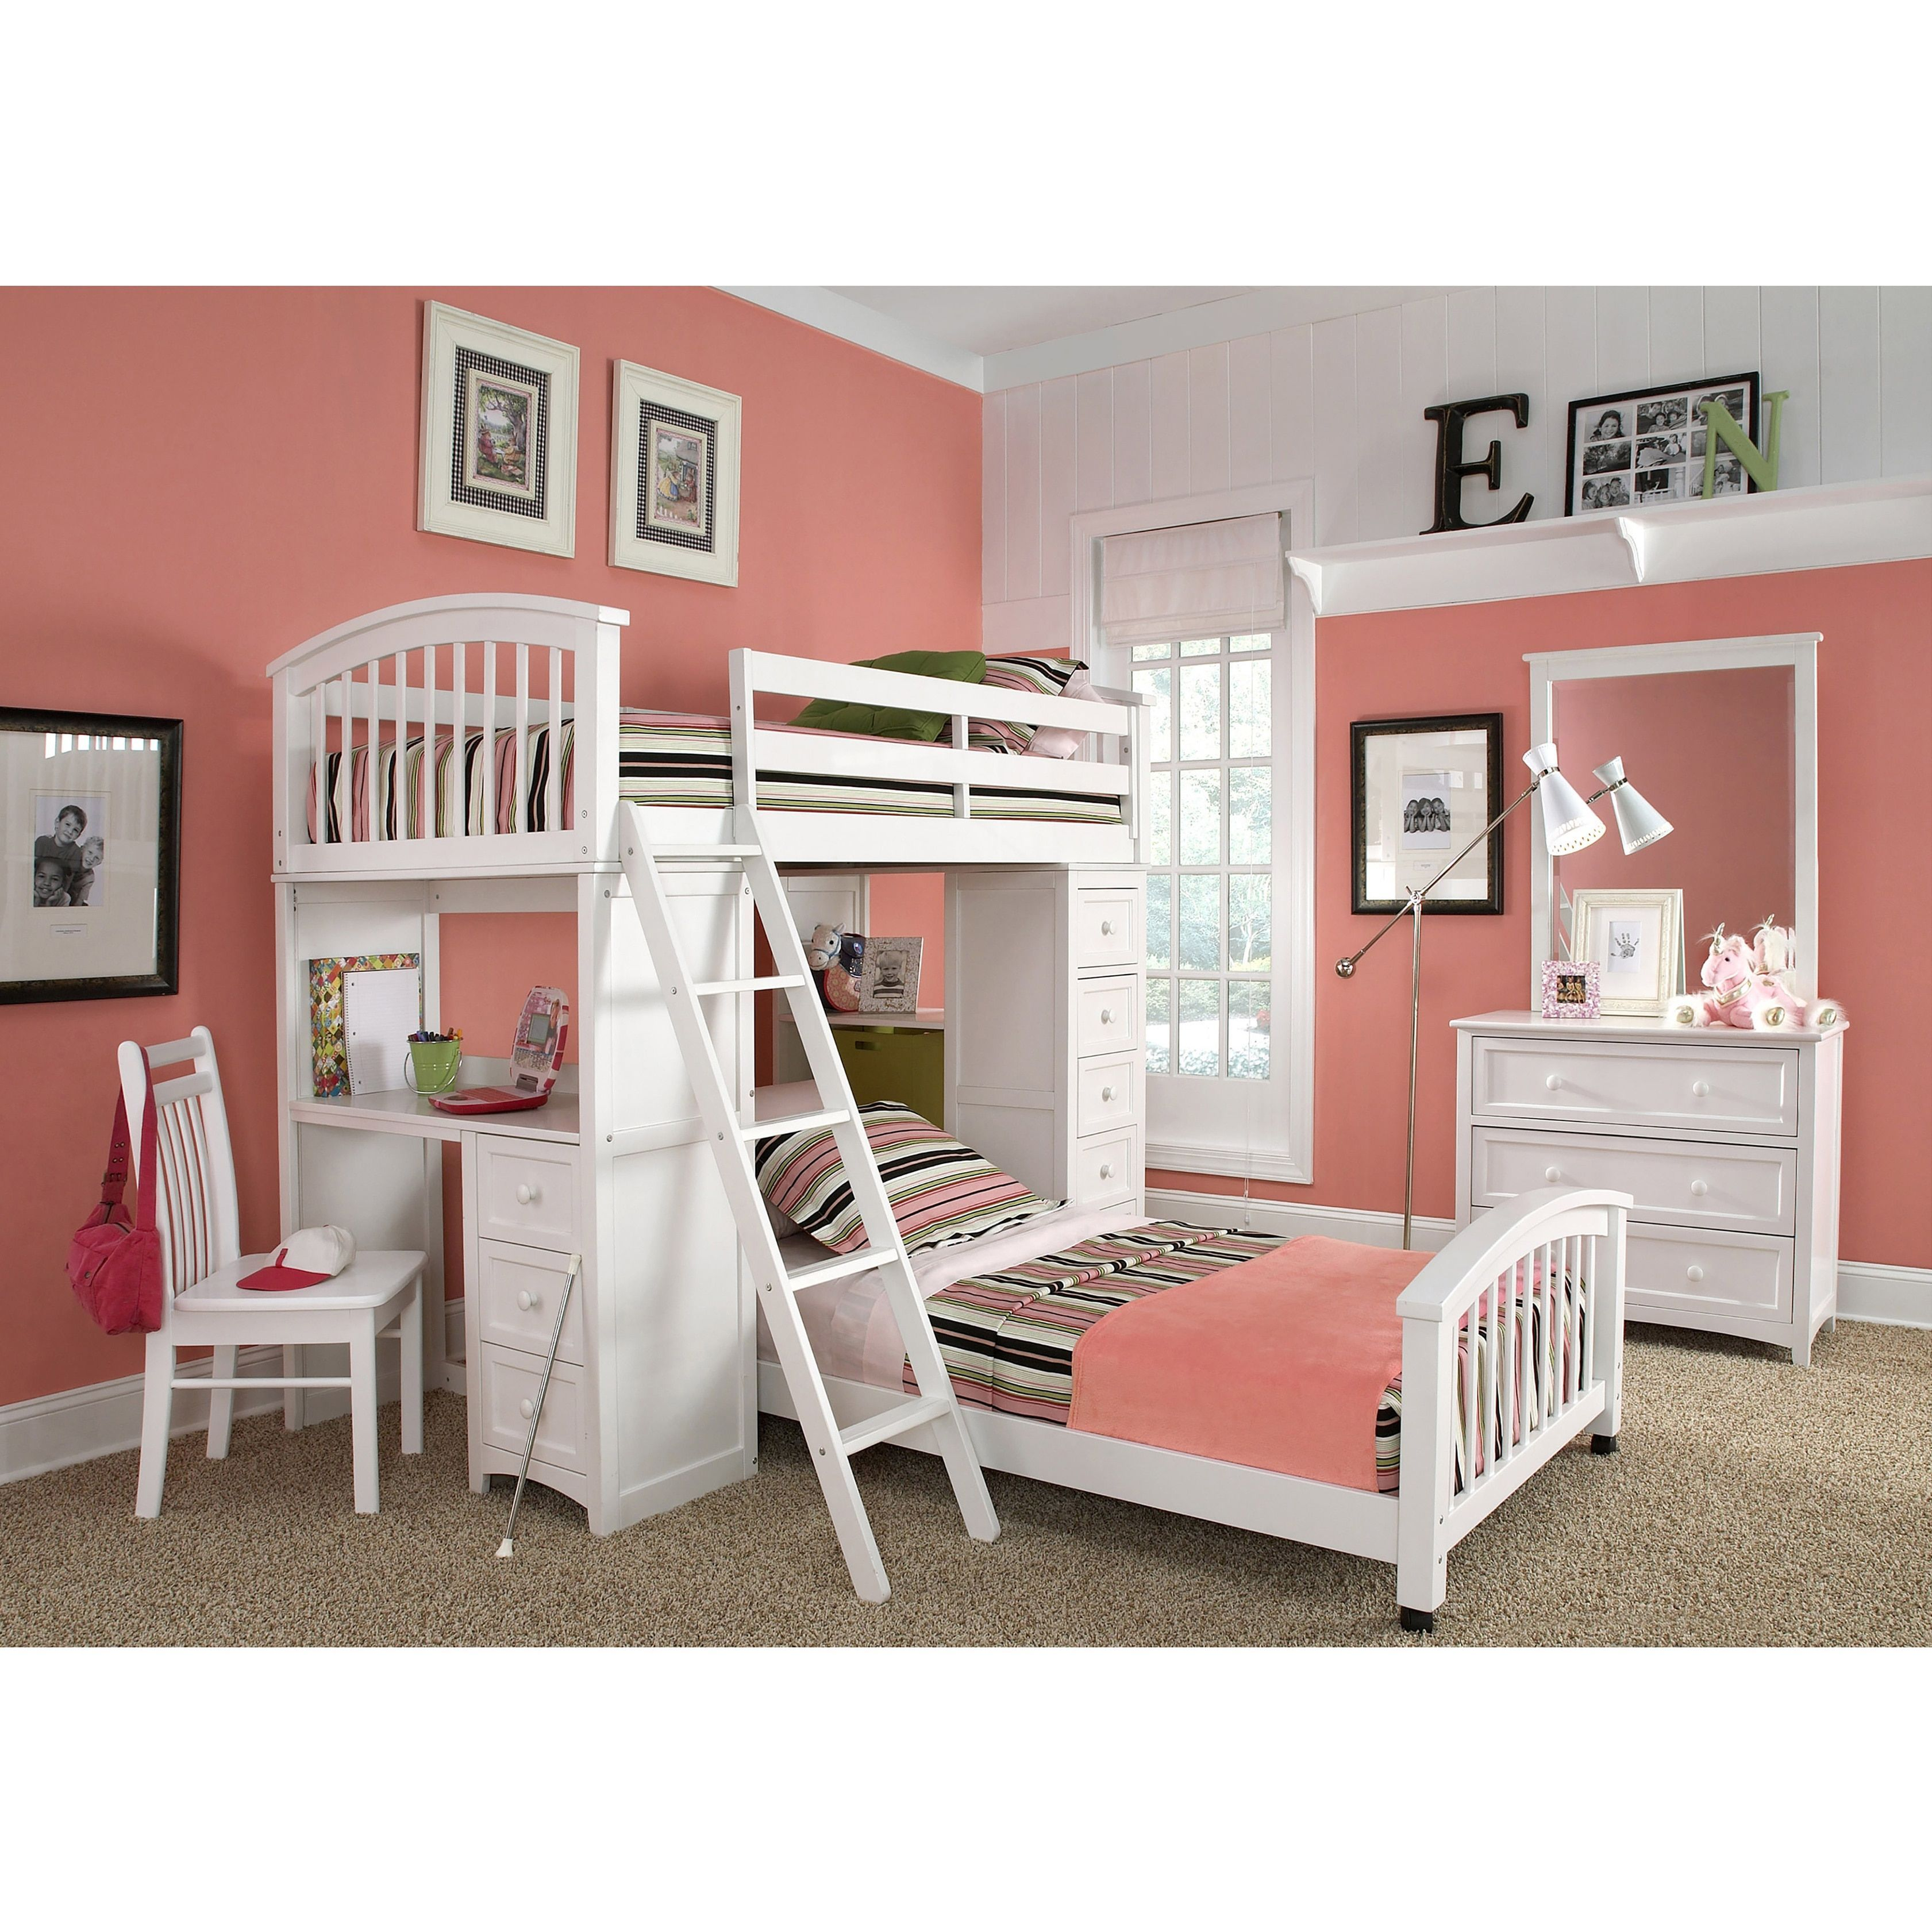 Loft bed ideas for girls  NE Kids School House Student Loft White and Lower Twin Bed Student